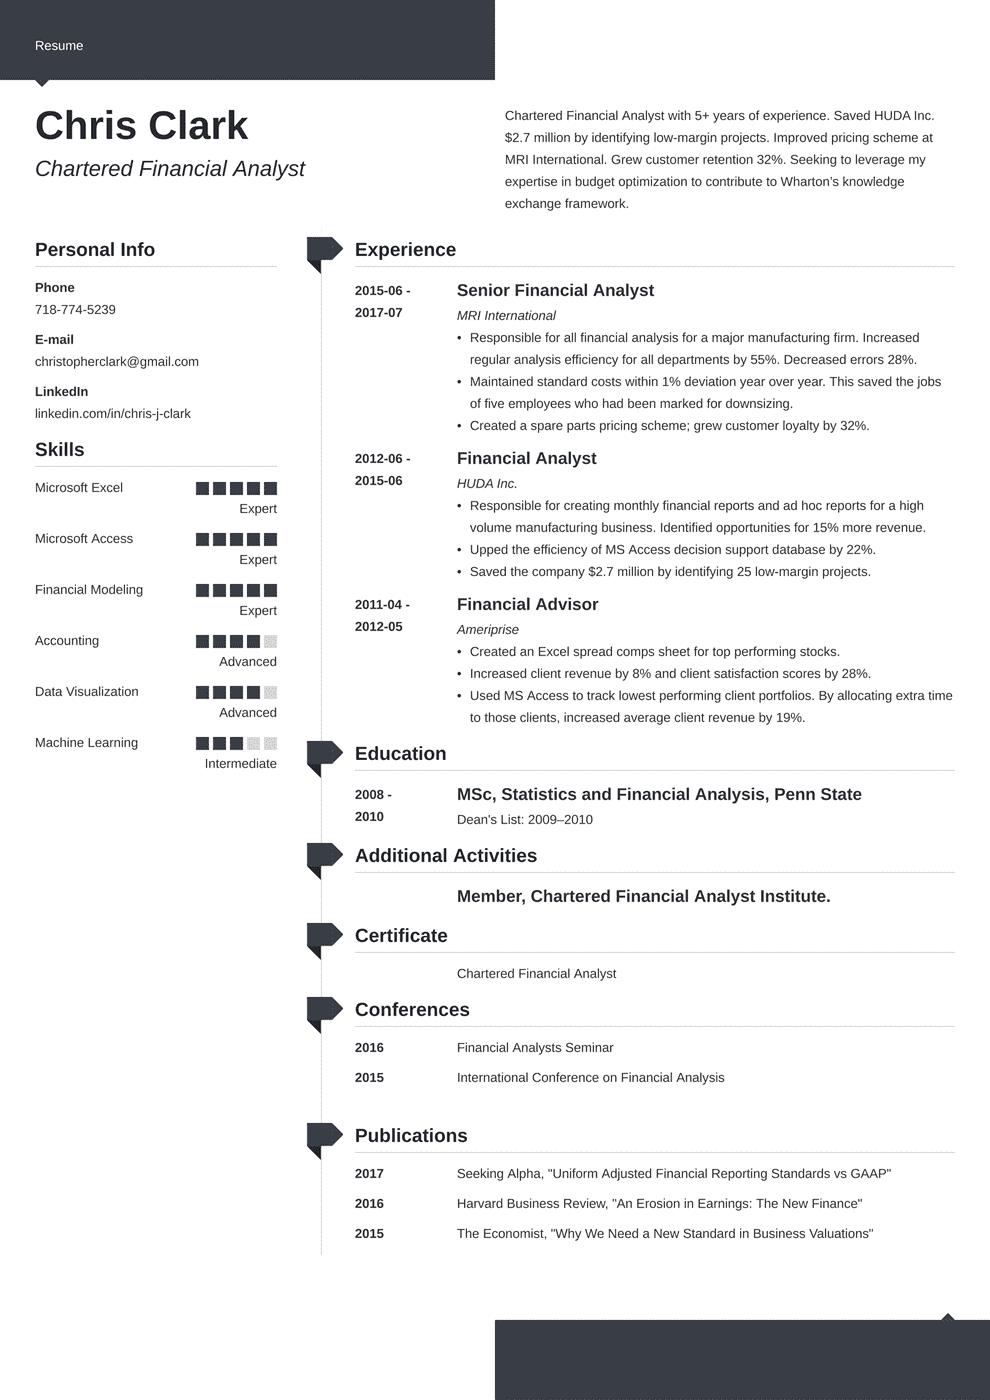 MBA Application Resume Template & Guide (20+ Examples)